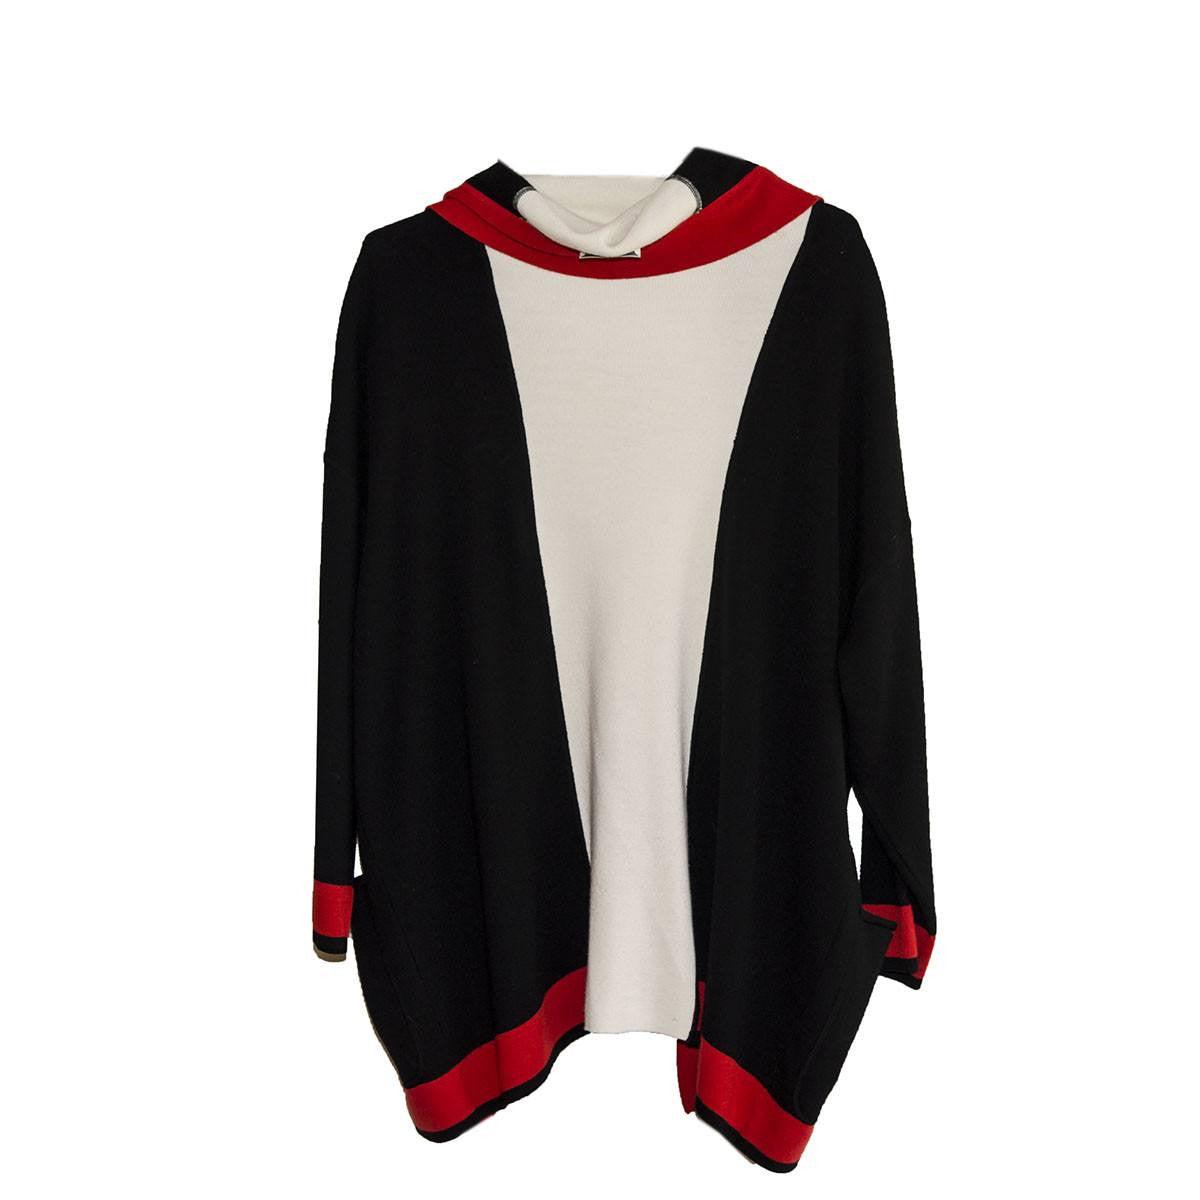 Vintage Italian Color Knit Cardigan, Self Hood, Red, Black & White Color Block 8